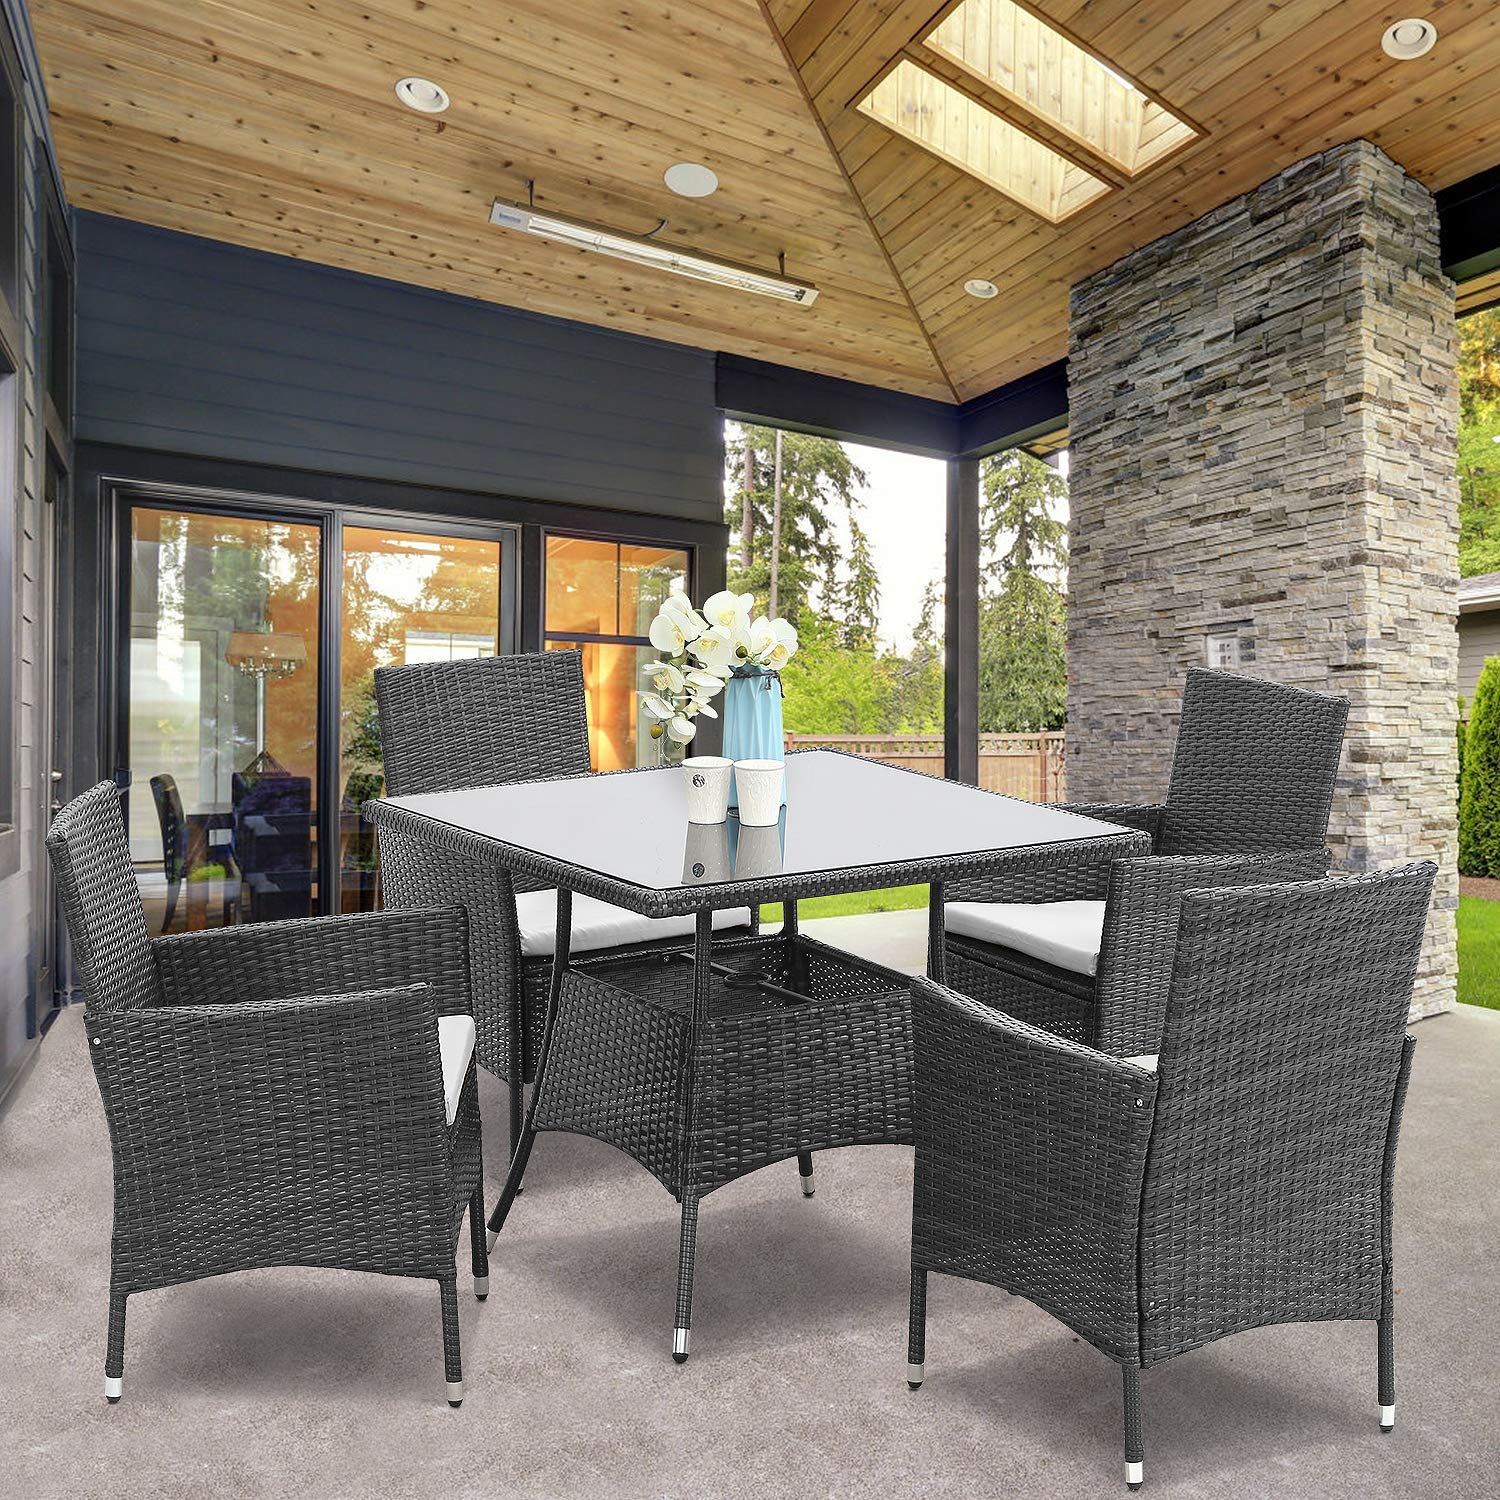 Wisteria Lane 5 Piece Outdoor Patio Dining Set, Wicker Glassed Table and Cushioned Chair, Umbrella Cut Out,Grey